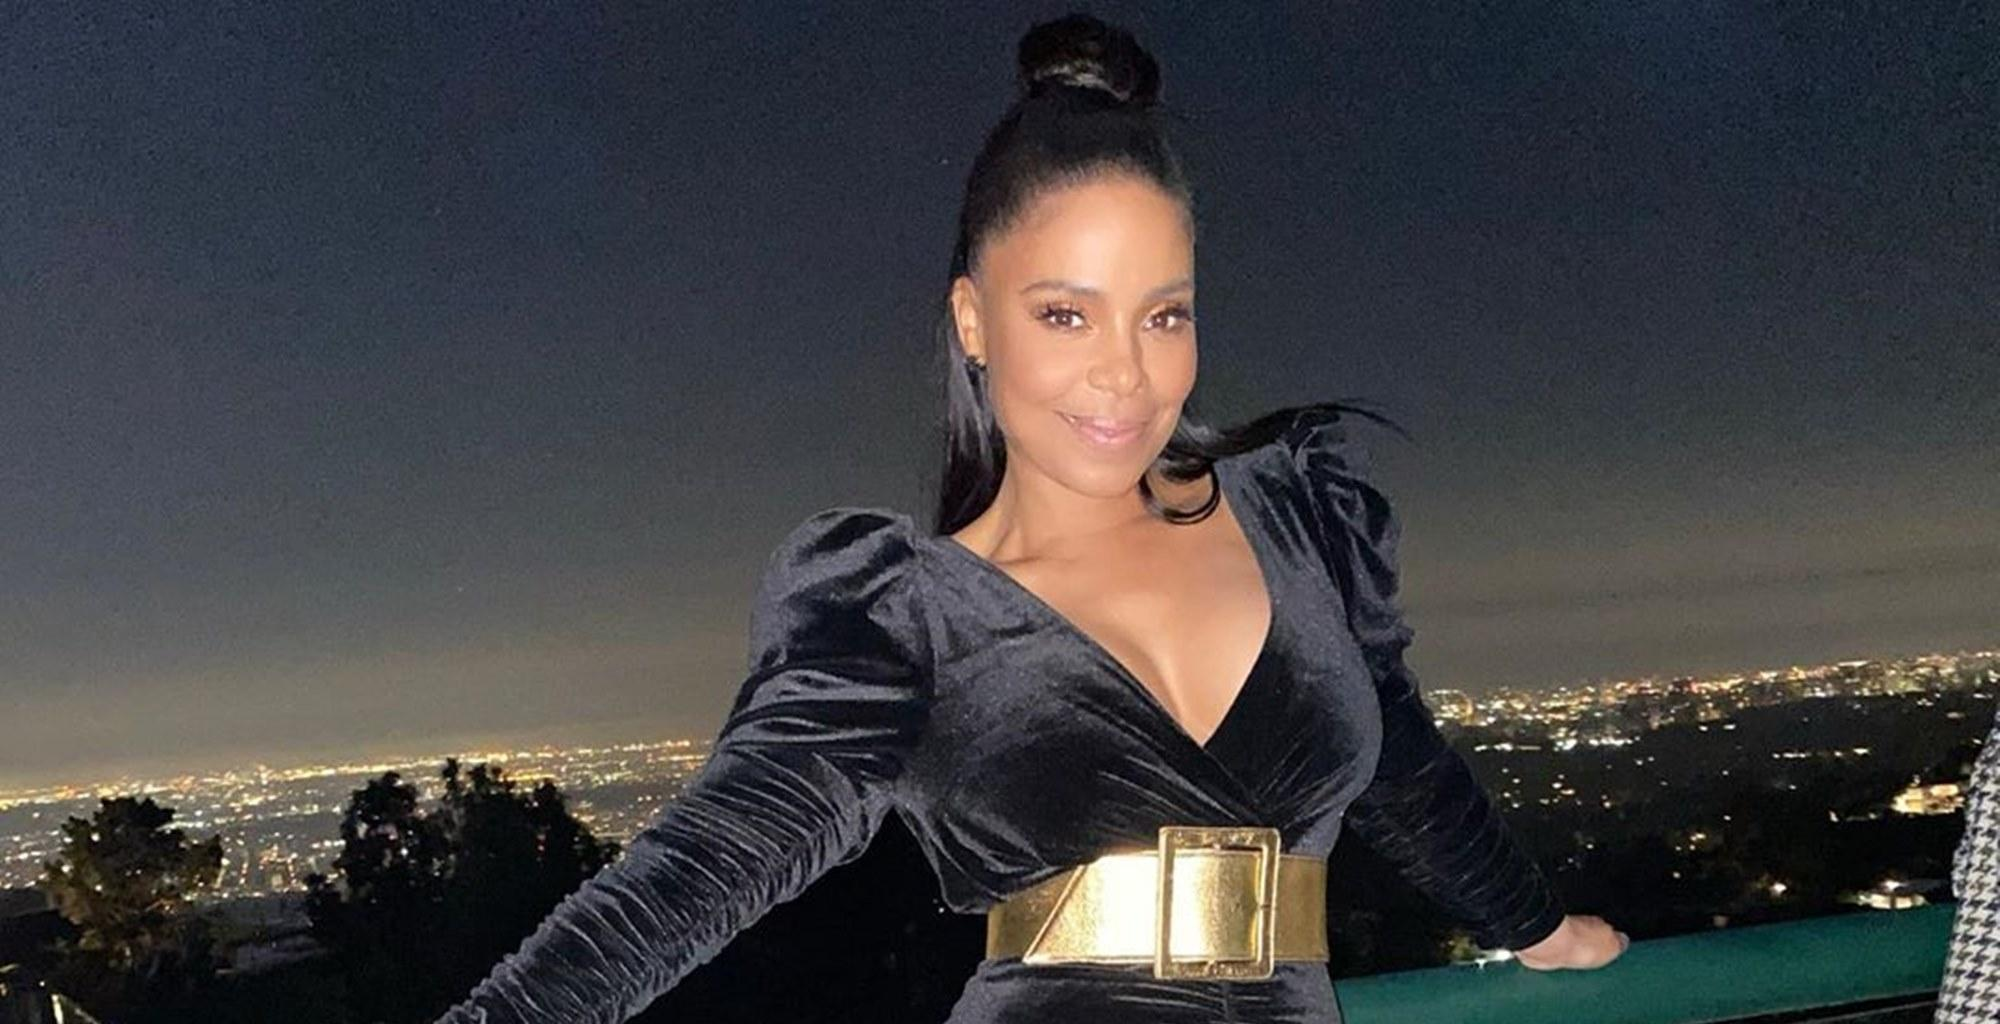 Sanaa Lathan Shows Off Her Gorgeous Natural Hair In New Photos Two Years After Shaving Her Head Bald For 'Nappily Ever After' Movie